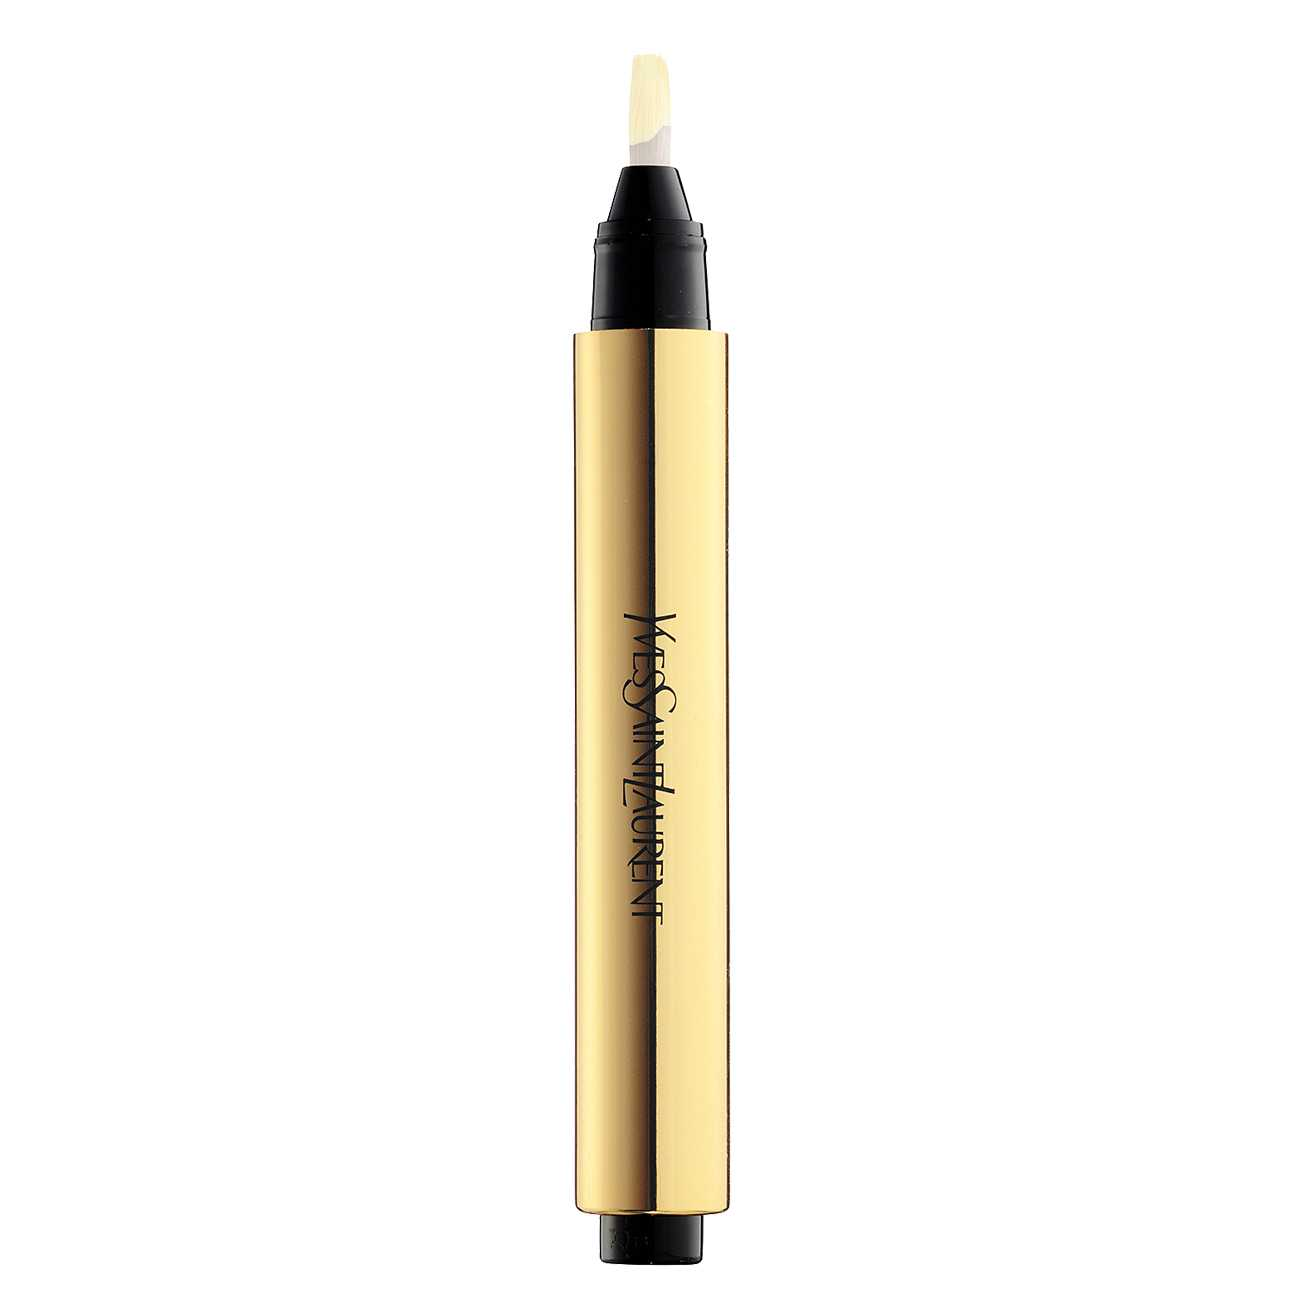 Touche Eclat Radiant Touch 2.5 Ml Luminous Honey 5 Yves Saint Laurent imagine 2021 bestvalue.eu